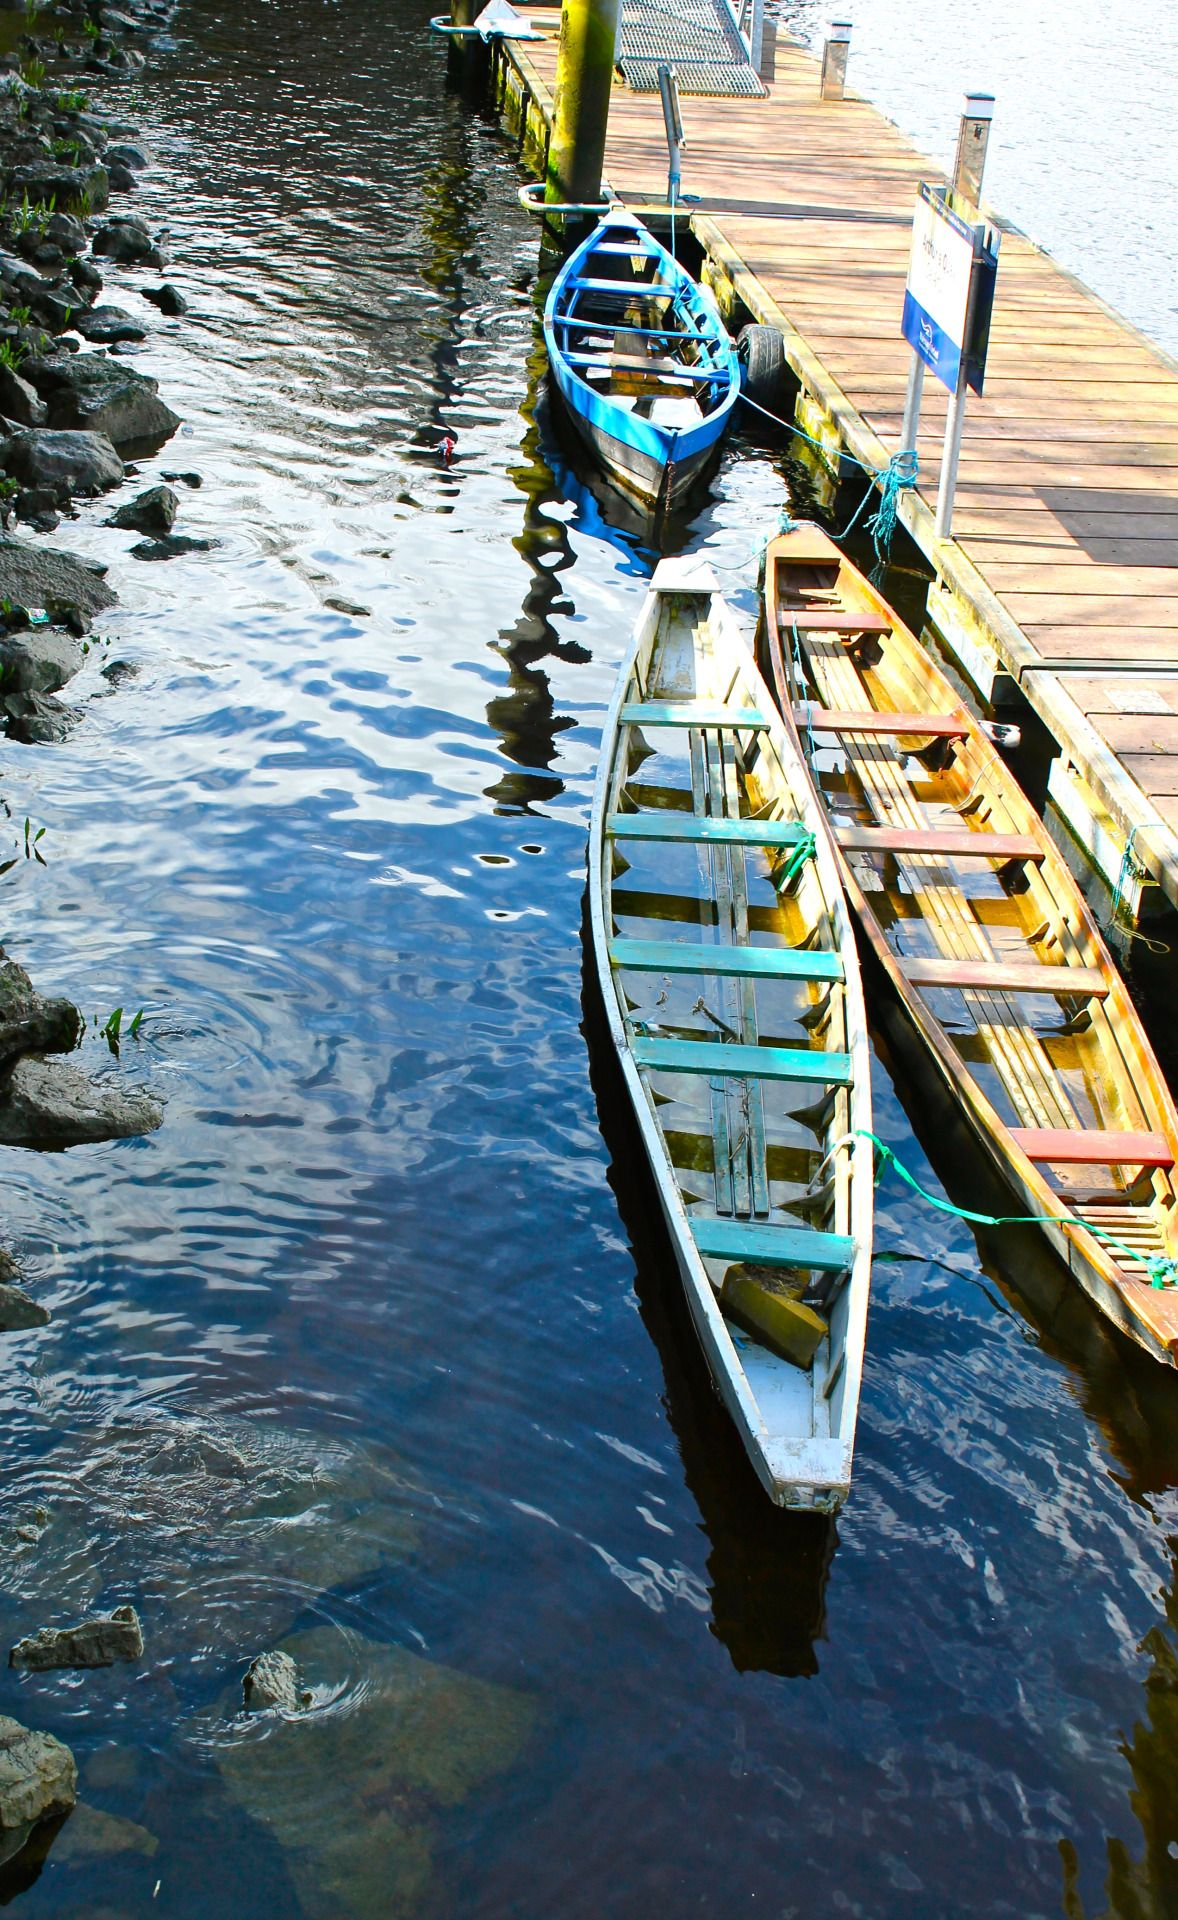 mcmollyrenee Boats in Limerick, Ireland. Photo